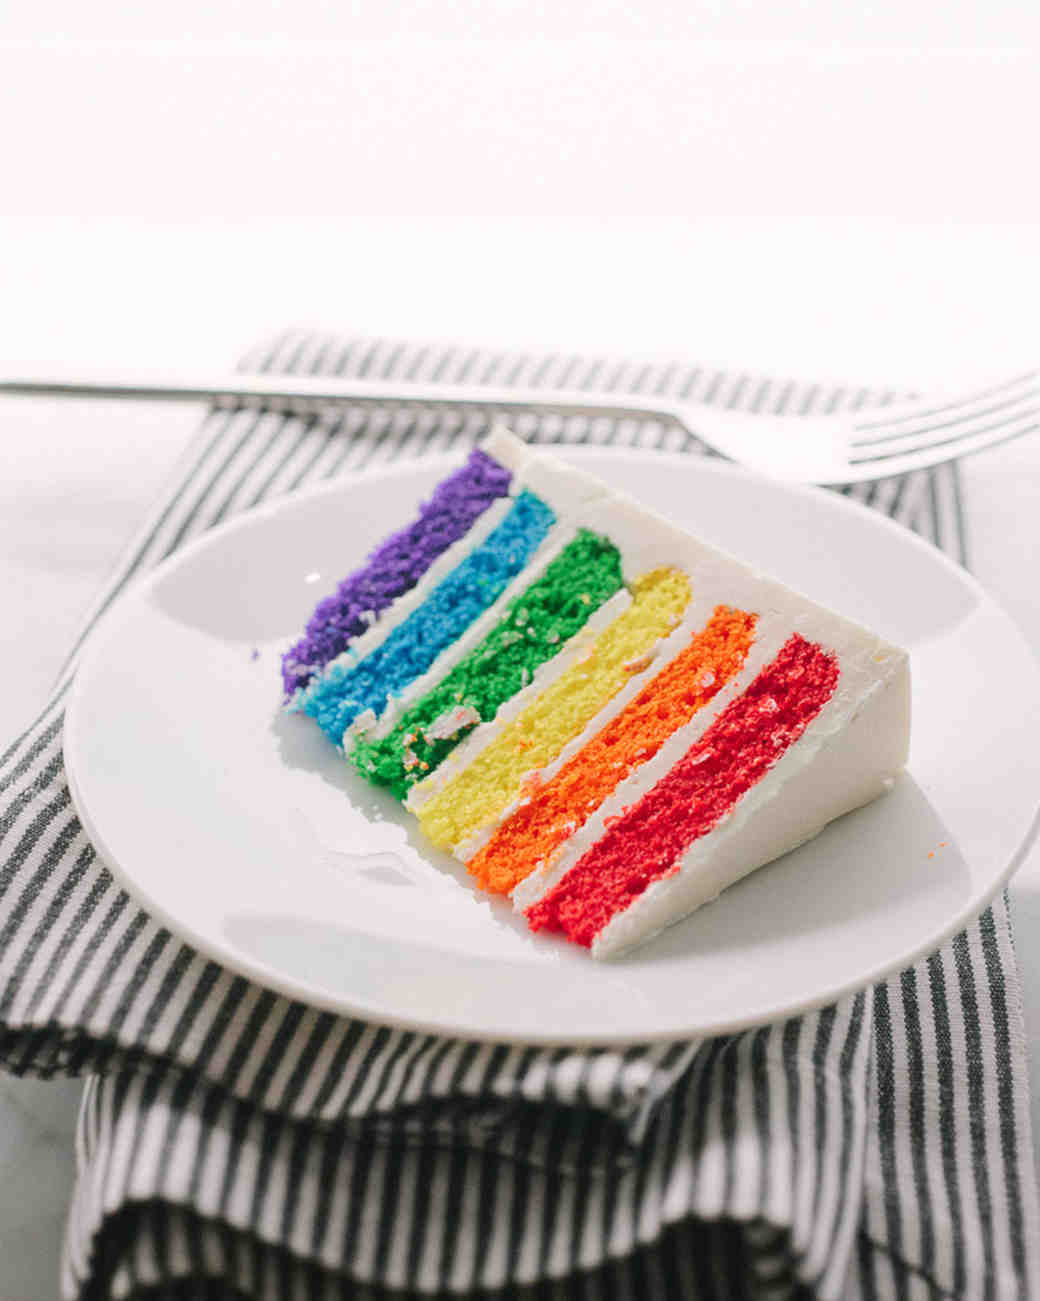 White Wedding Cake Slice with Rainbow Layers